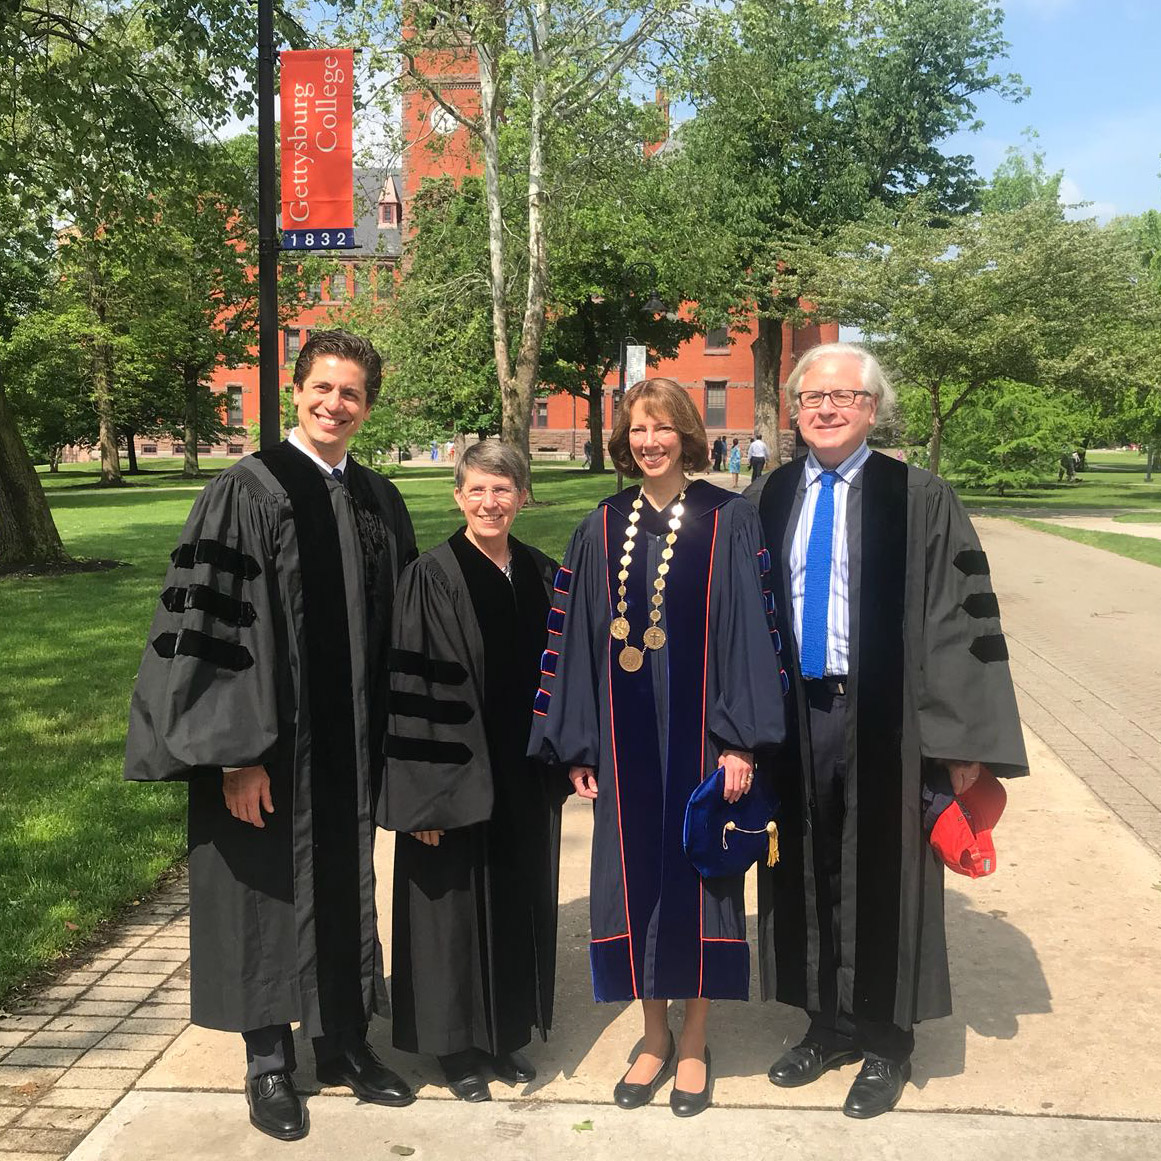 """President Janet Morgan Riggs (second from right) with (l-r) Gettysburg College Honorary Doctor of Music Francisco J. Núñez and fellow recipients - Honorary Doctor of Military Science Rebecca """"Becky"""" Stevens Halstead, and Honorary Doctor of Humane Letters Howard David Fineman"""